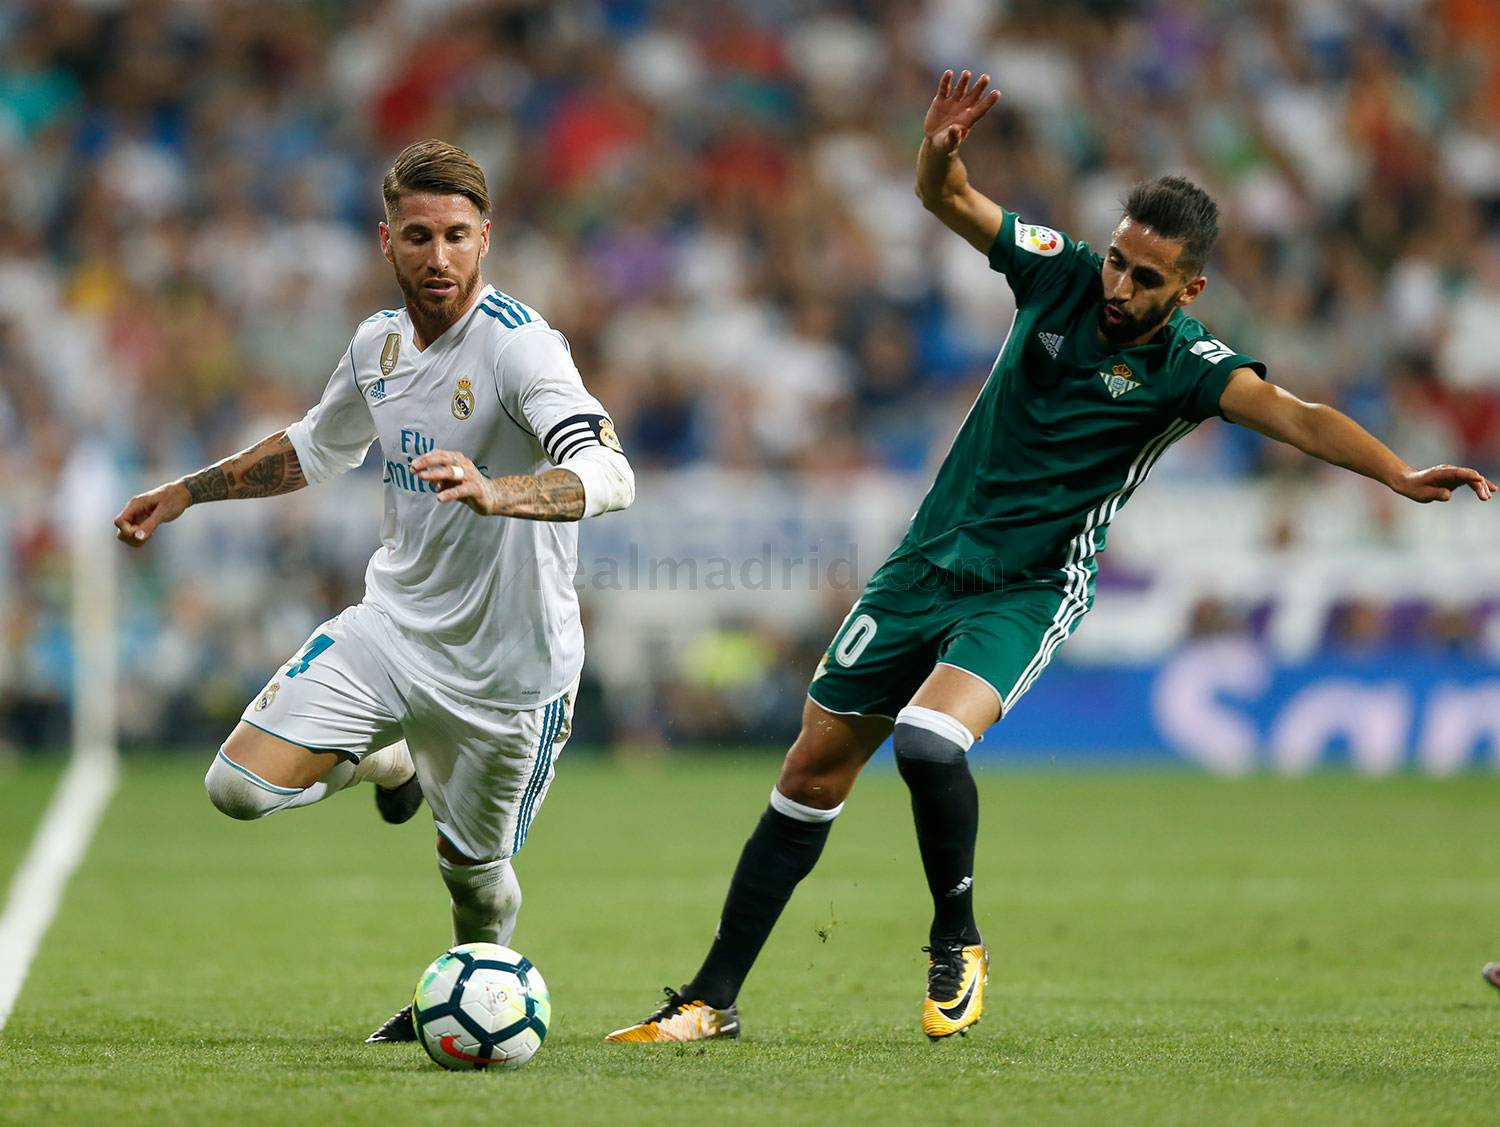 Real Madrid - Real Madrid - Real Betis - 21-09-2017